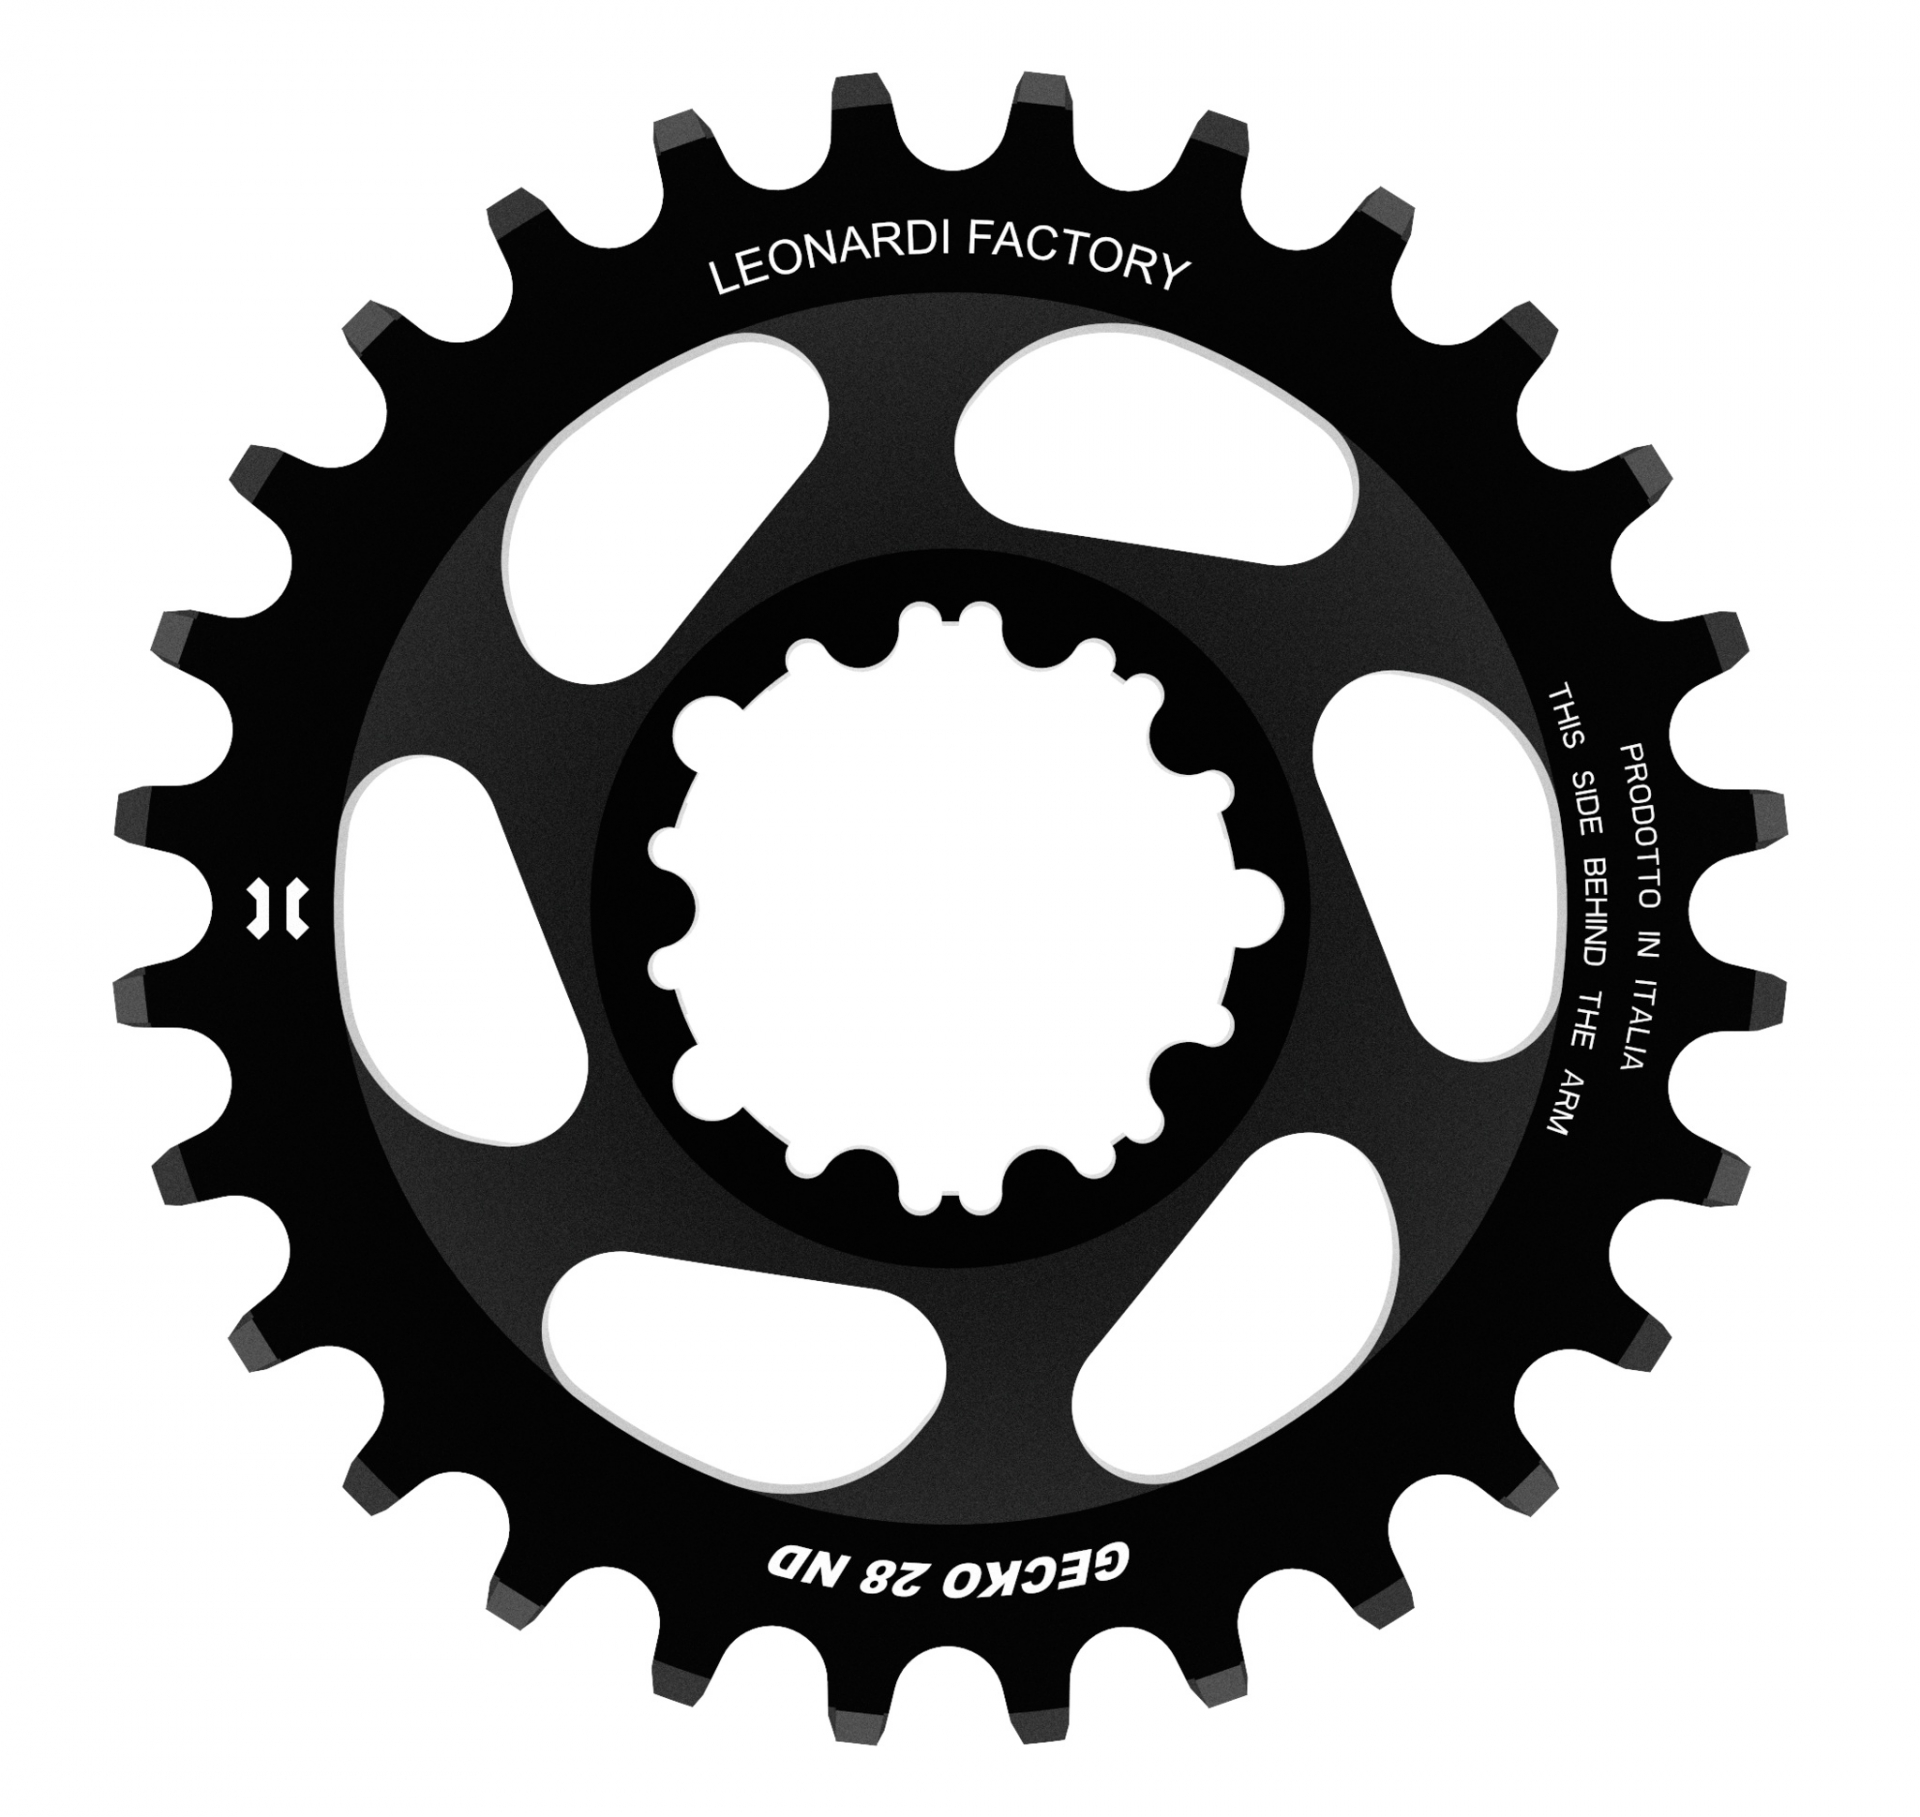 Plateau narrow/wide Leonardi Factory Gecko SRAM DM GXP Eagle 28 dents offset 6 mm Noir